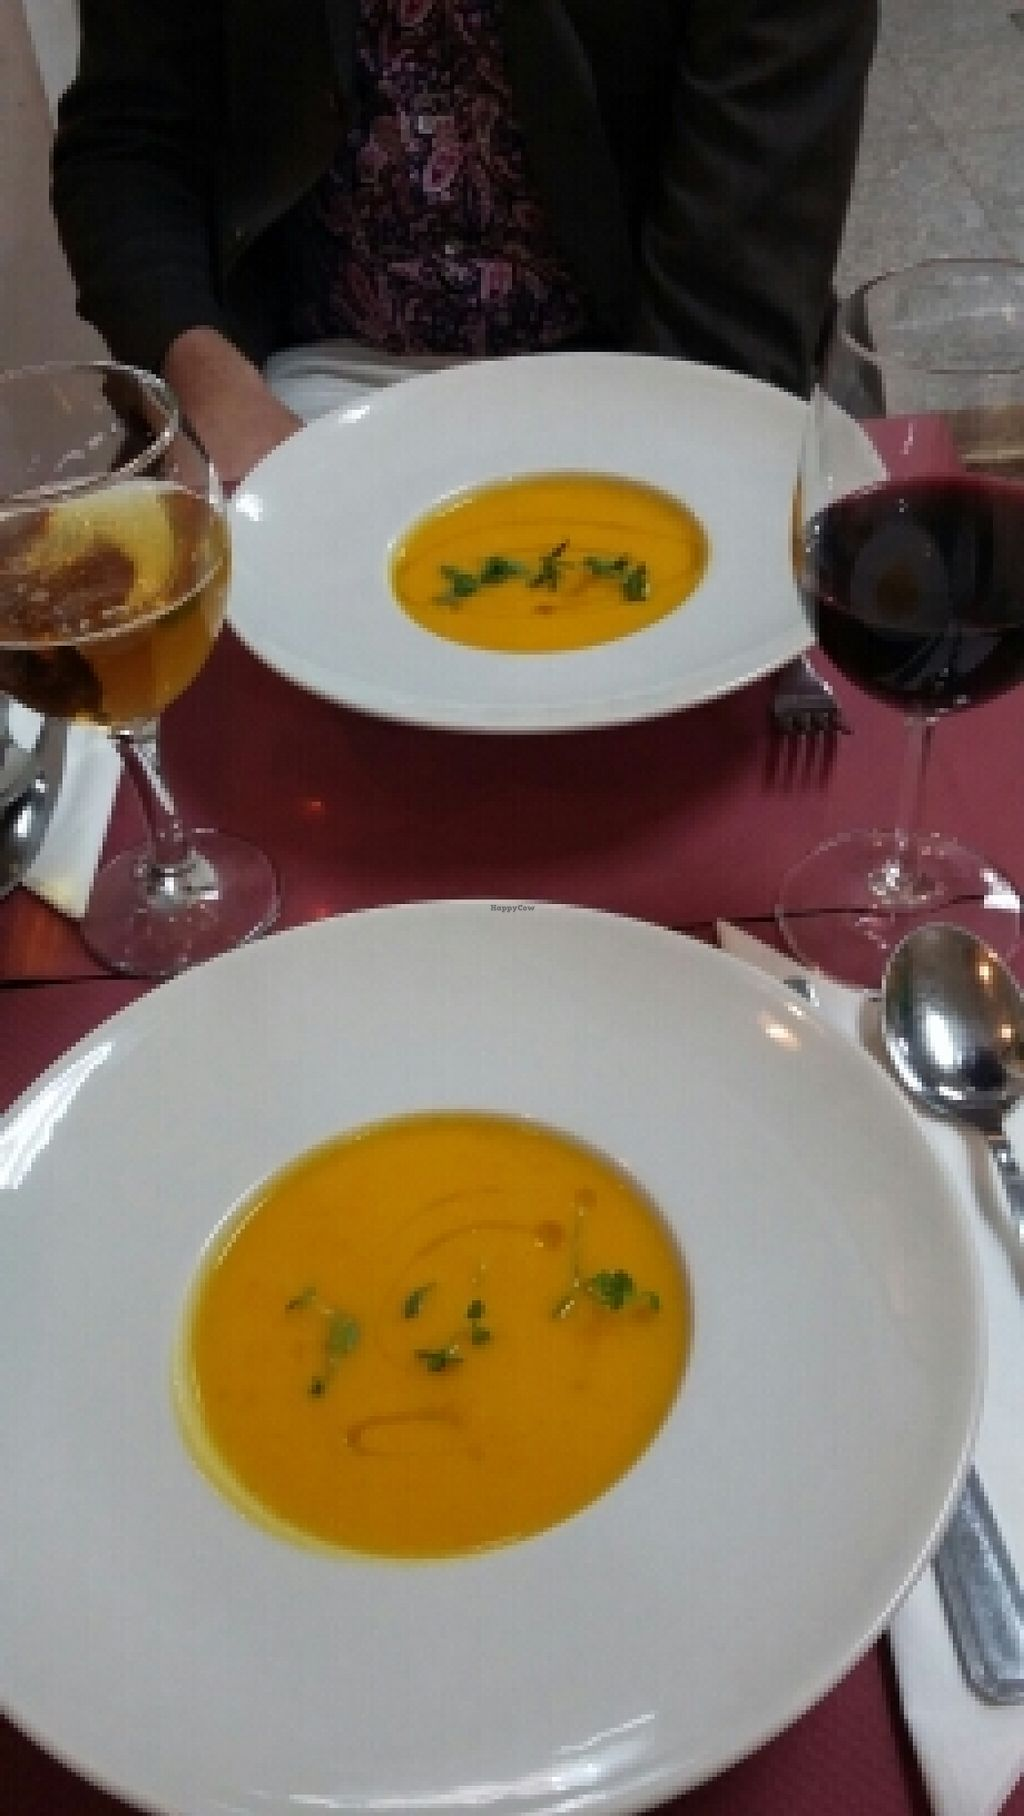 """Photo of CLOSED: Botanique  by <a href=""""/members/profile/Vegan-Vinyl-Avengers"""">Vegan-Vinyl-Avengers</a> <br/>Cream of pumpkin soup for our first course <br/> April 5, 2016  - <a href='/contact/abuse/image/58150/142863'>Report</a>"""